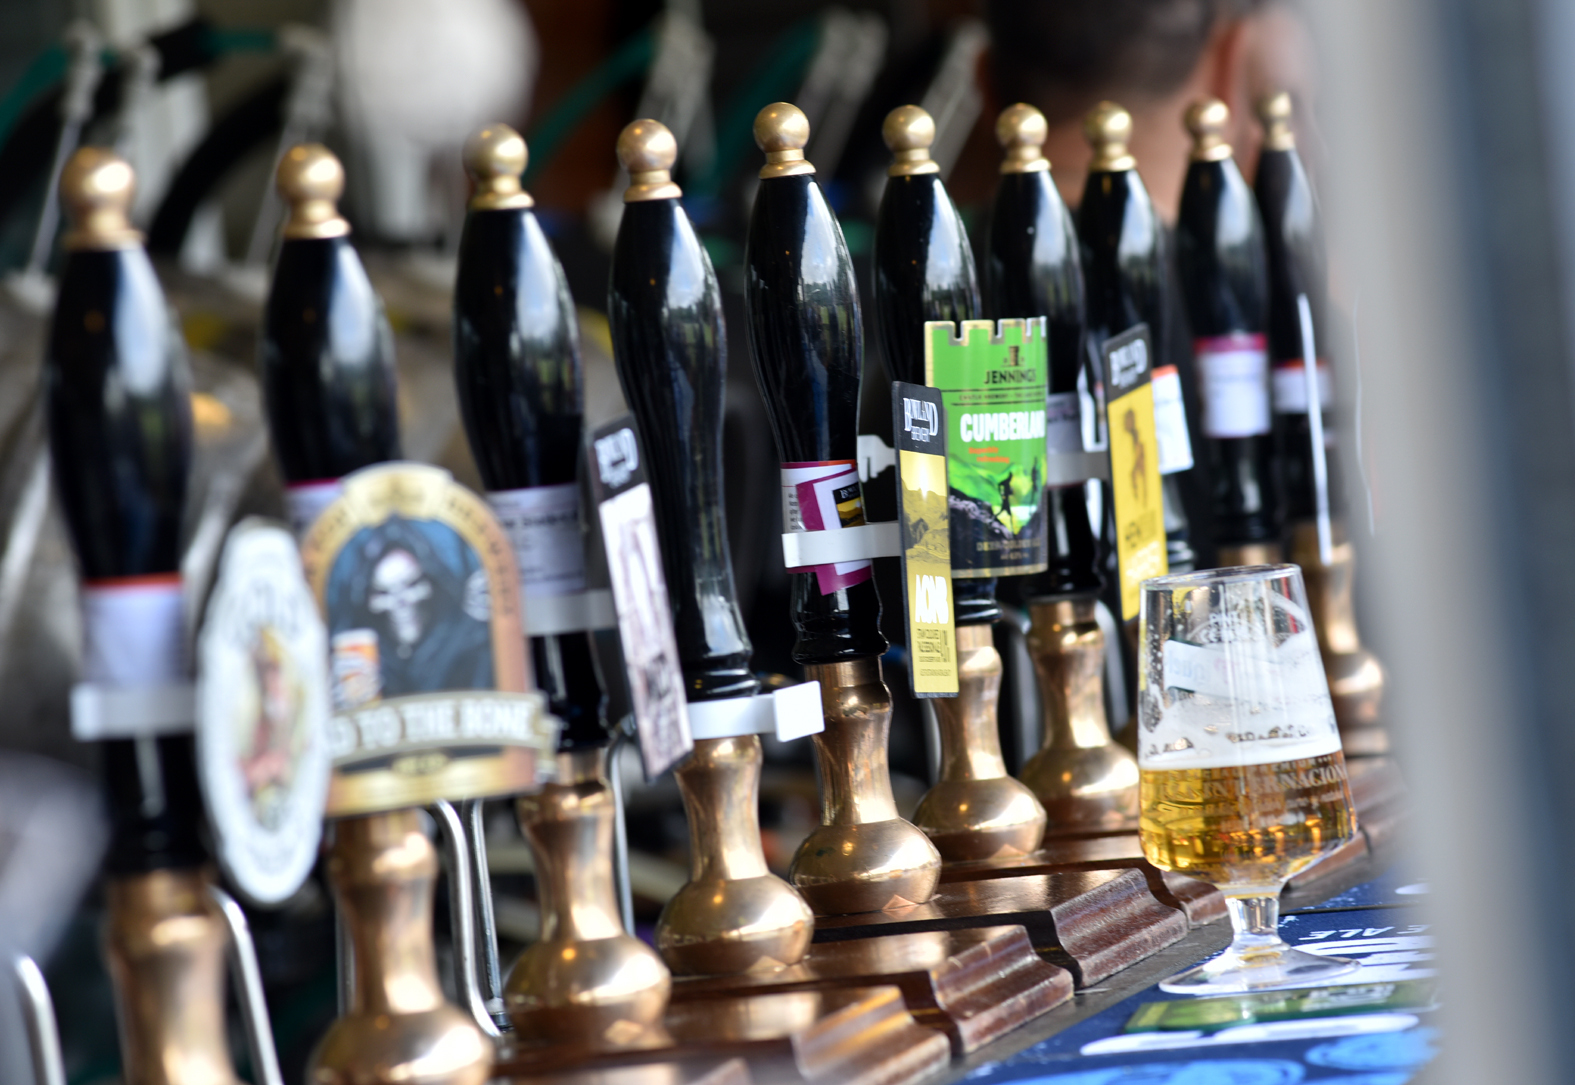 Beer taps. Photo Richard Holton.